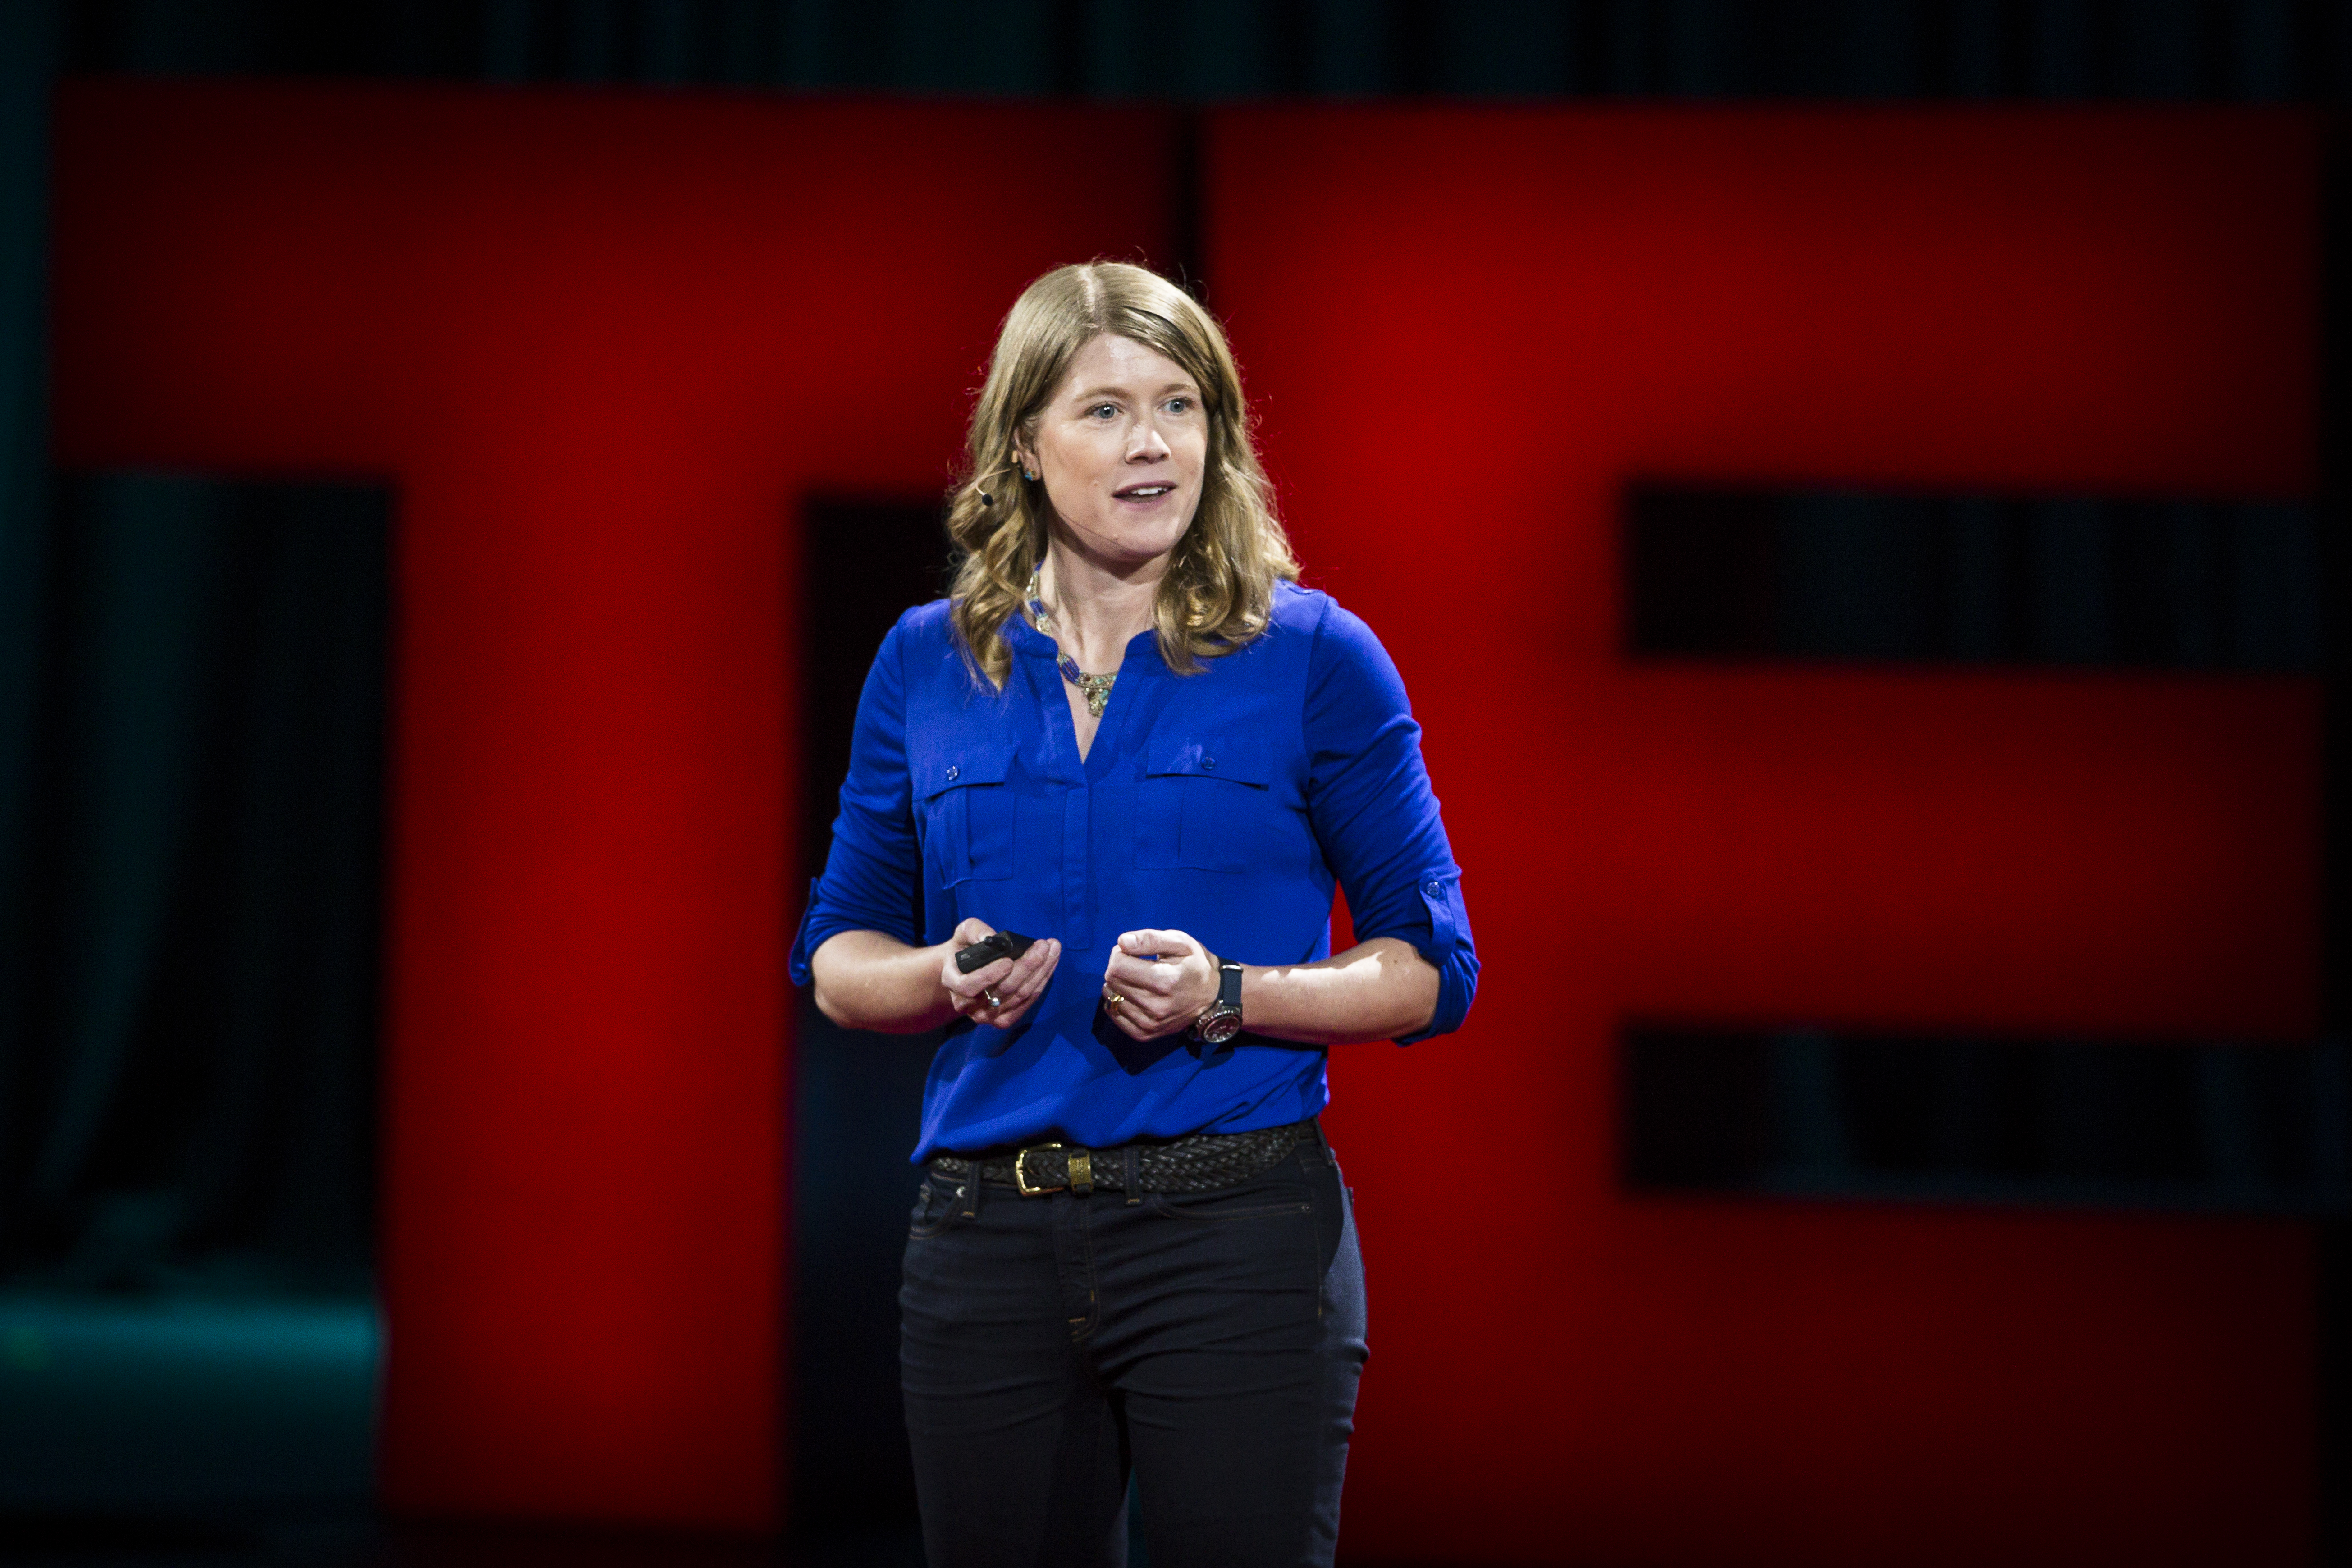 Sarah Parcak is the winner of the 2016 TED Prize. She explains how anyone can be a space archaeologist on their coffee break. Photo: Marla Aufmuth / TED